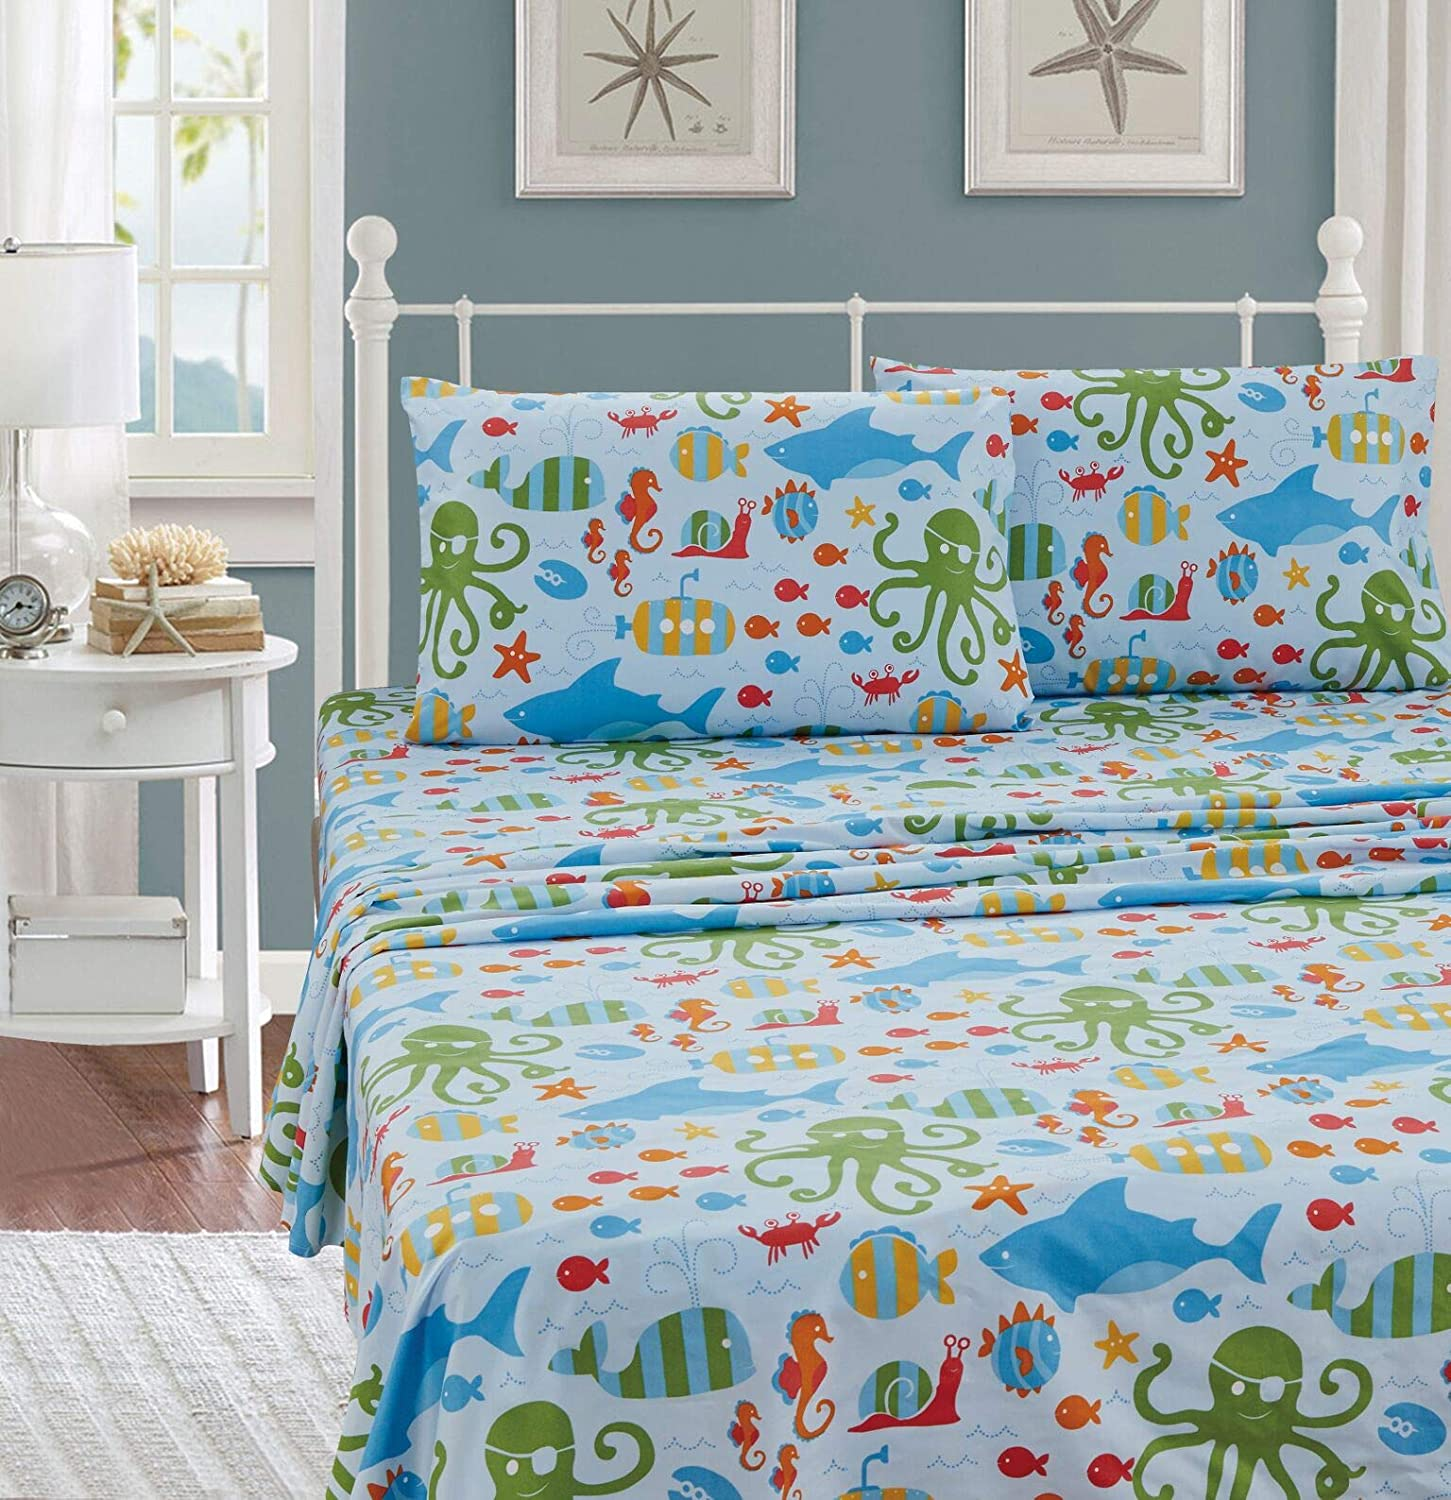 Better Home Style Multicolor Under The Sea Life Whales Fish Seahorse Sea Stars Octopus Lobster Kids/Boys/Teens 4 Piece Sheet Set Includes Pillowcases Flat and Fitted Sheets # Octopus (Full)